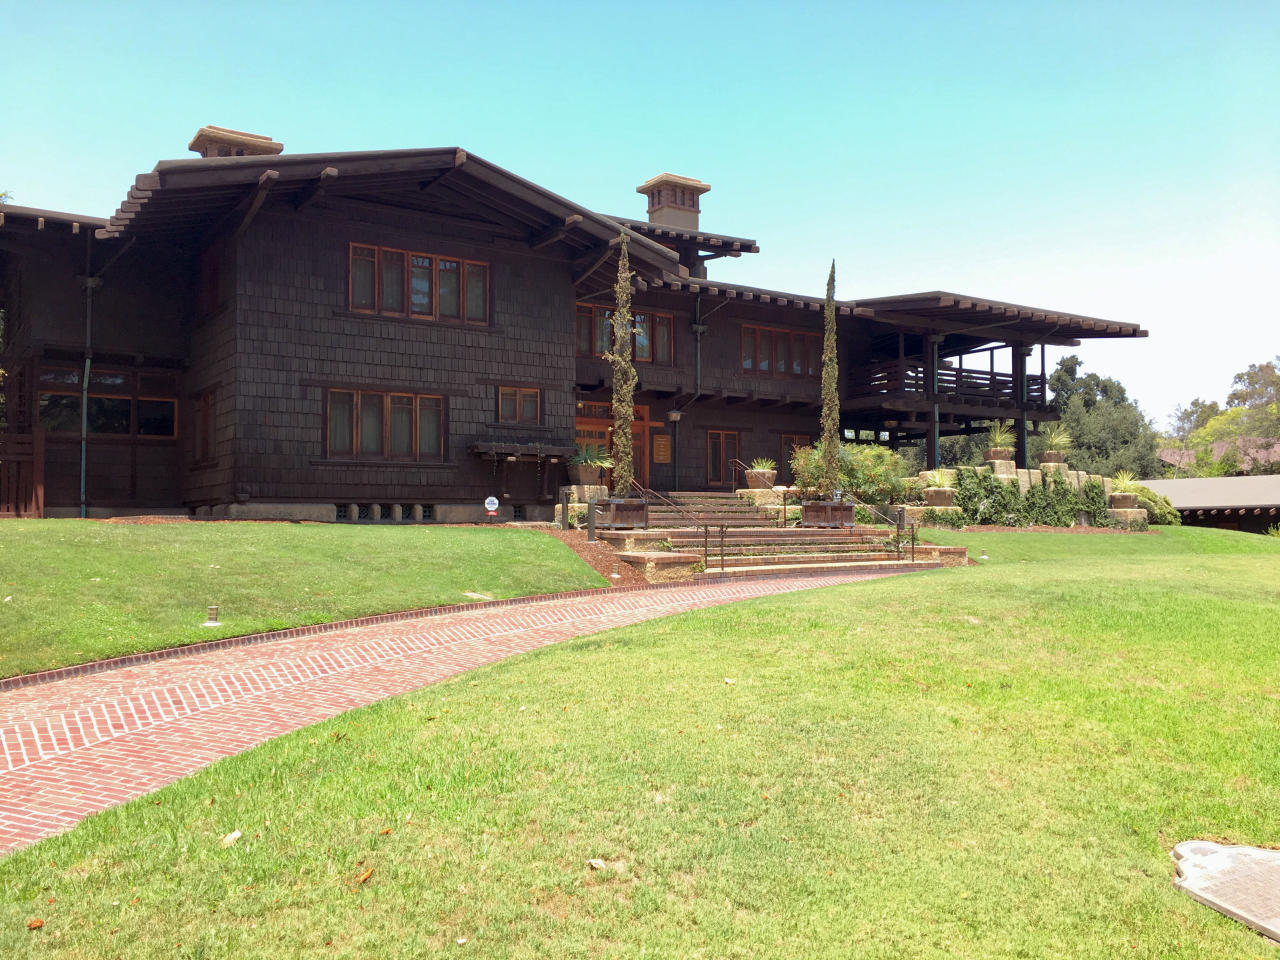 This July 15, 2017 photo shows The Gamble House in Pasadena, Calif., considered an outstanding example of American Arts and Crafts style architecture. The home was designed in 1908 as a winter residence for David Berry Gamble of the Procter & Gamble Co. family. (Maggie Delehanty via AP)